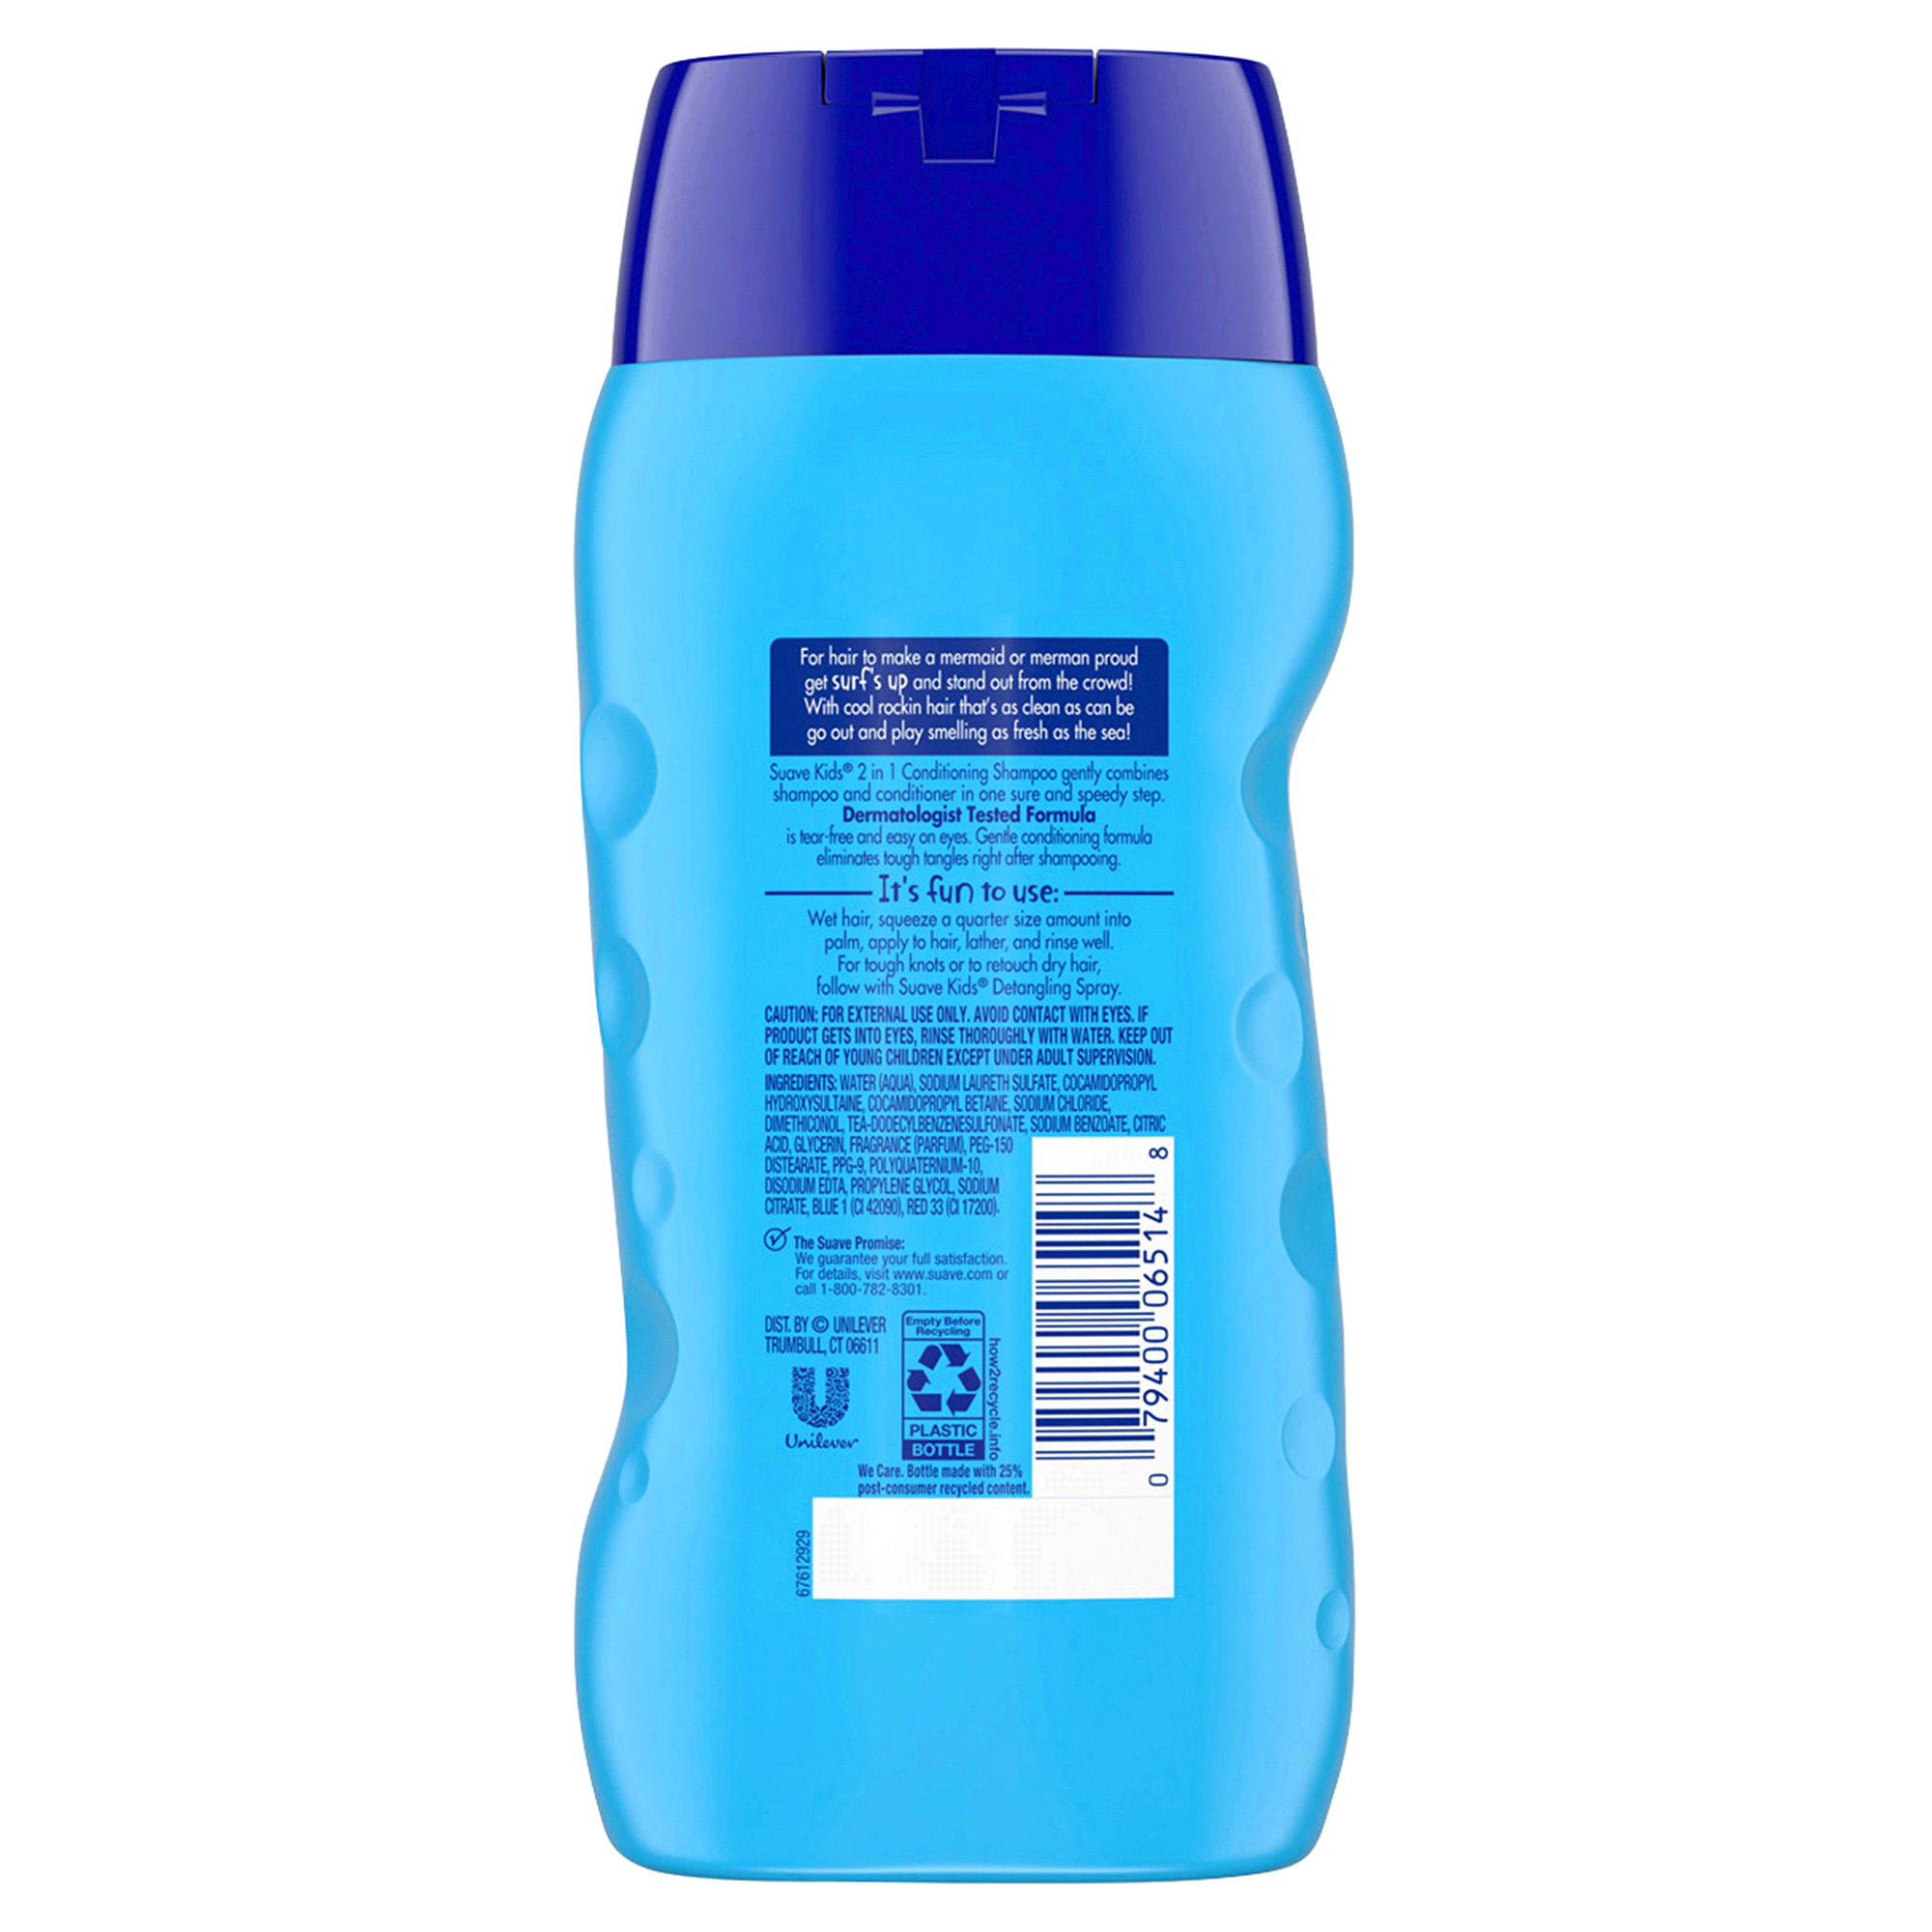 Tempat Jual Update Suave Kids Strawberry 2in1 Shampoo Conditioner 2 In 1 Smoothers And 665 Ml Surfs Up 12 Oz